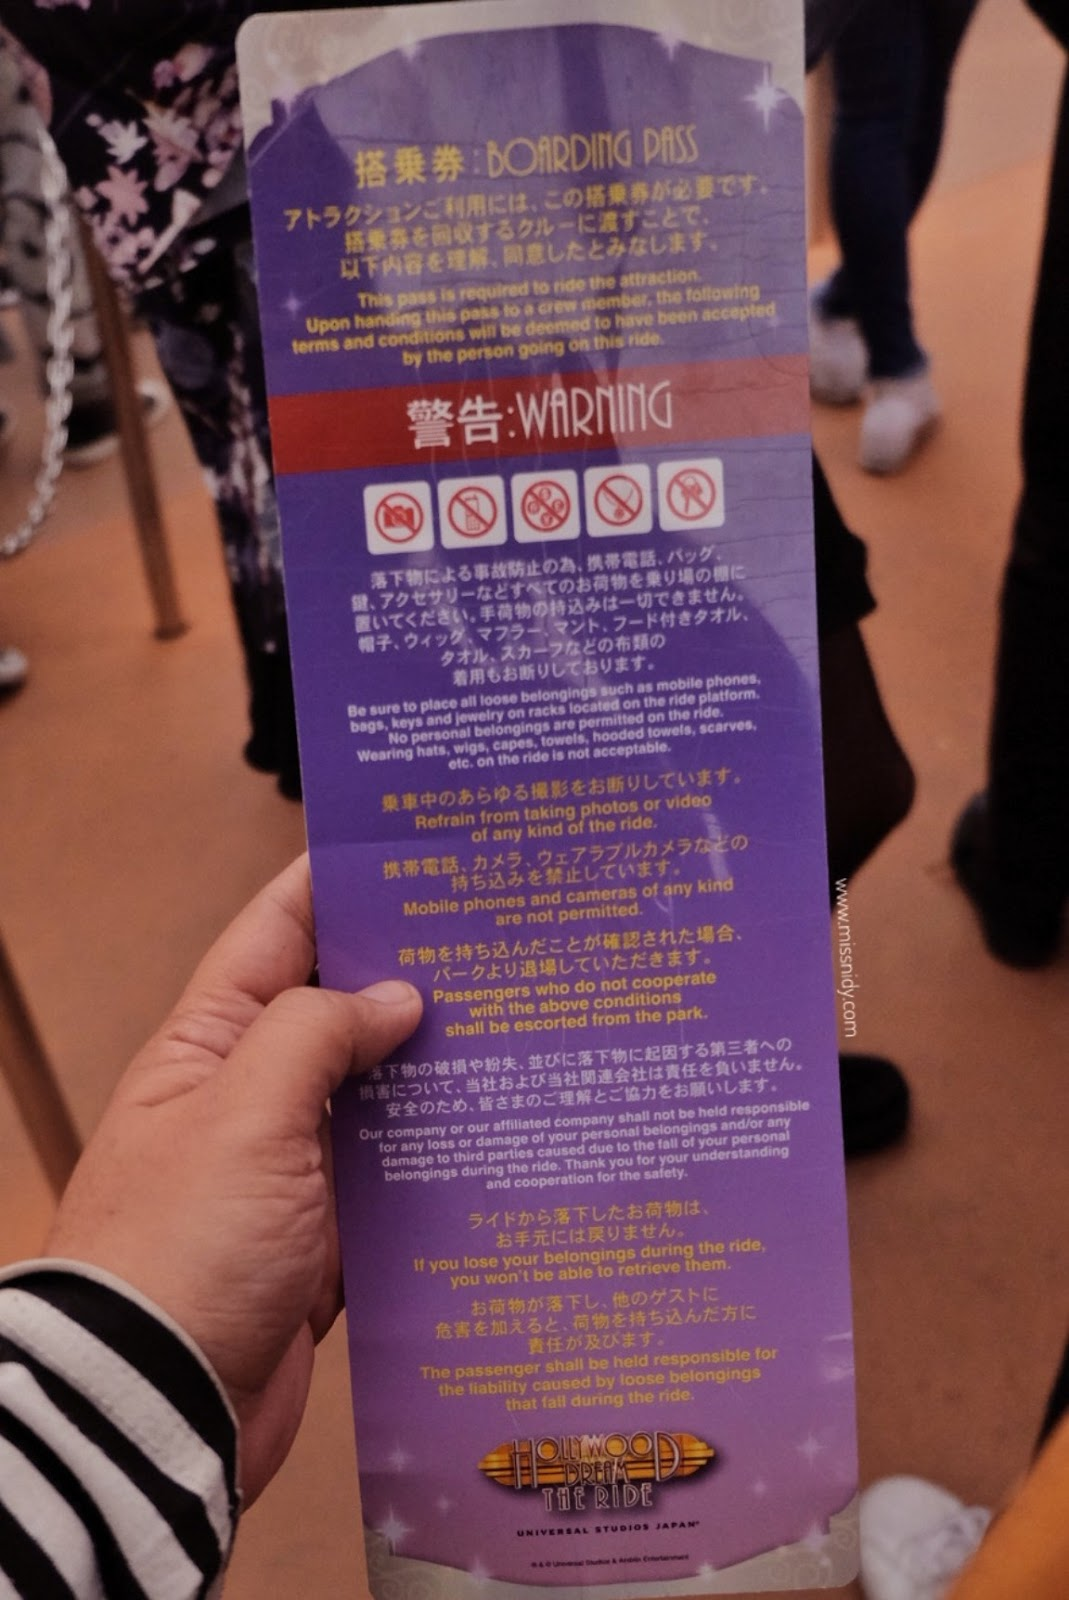 RULES IN UNIVERSAL STUDIO JAPAN